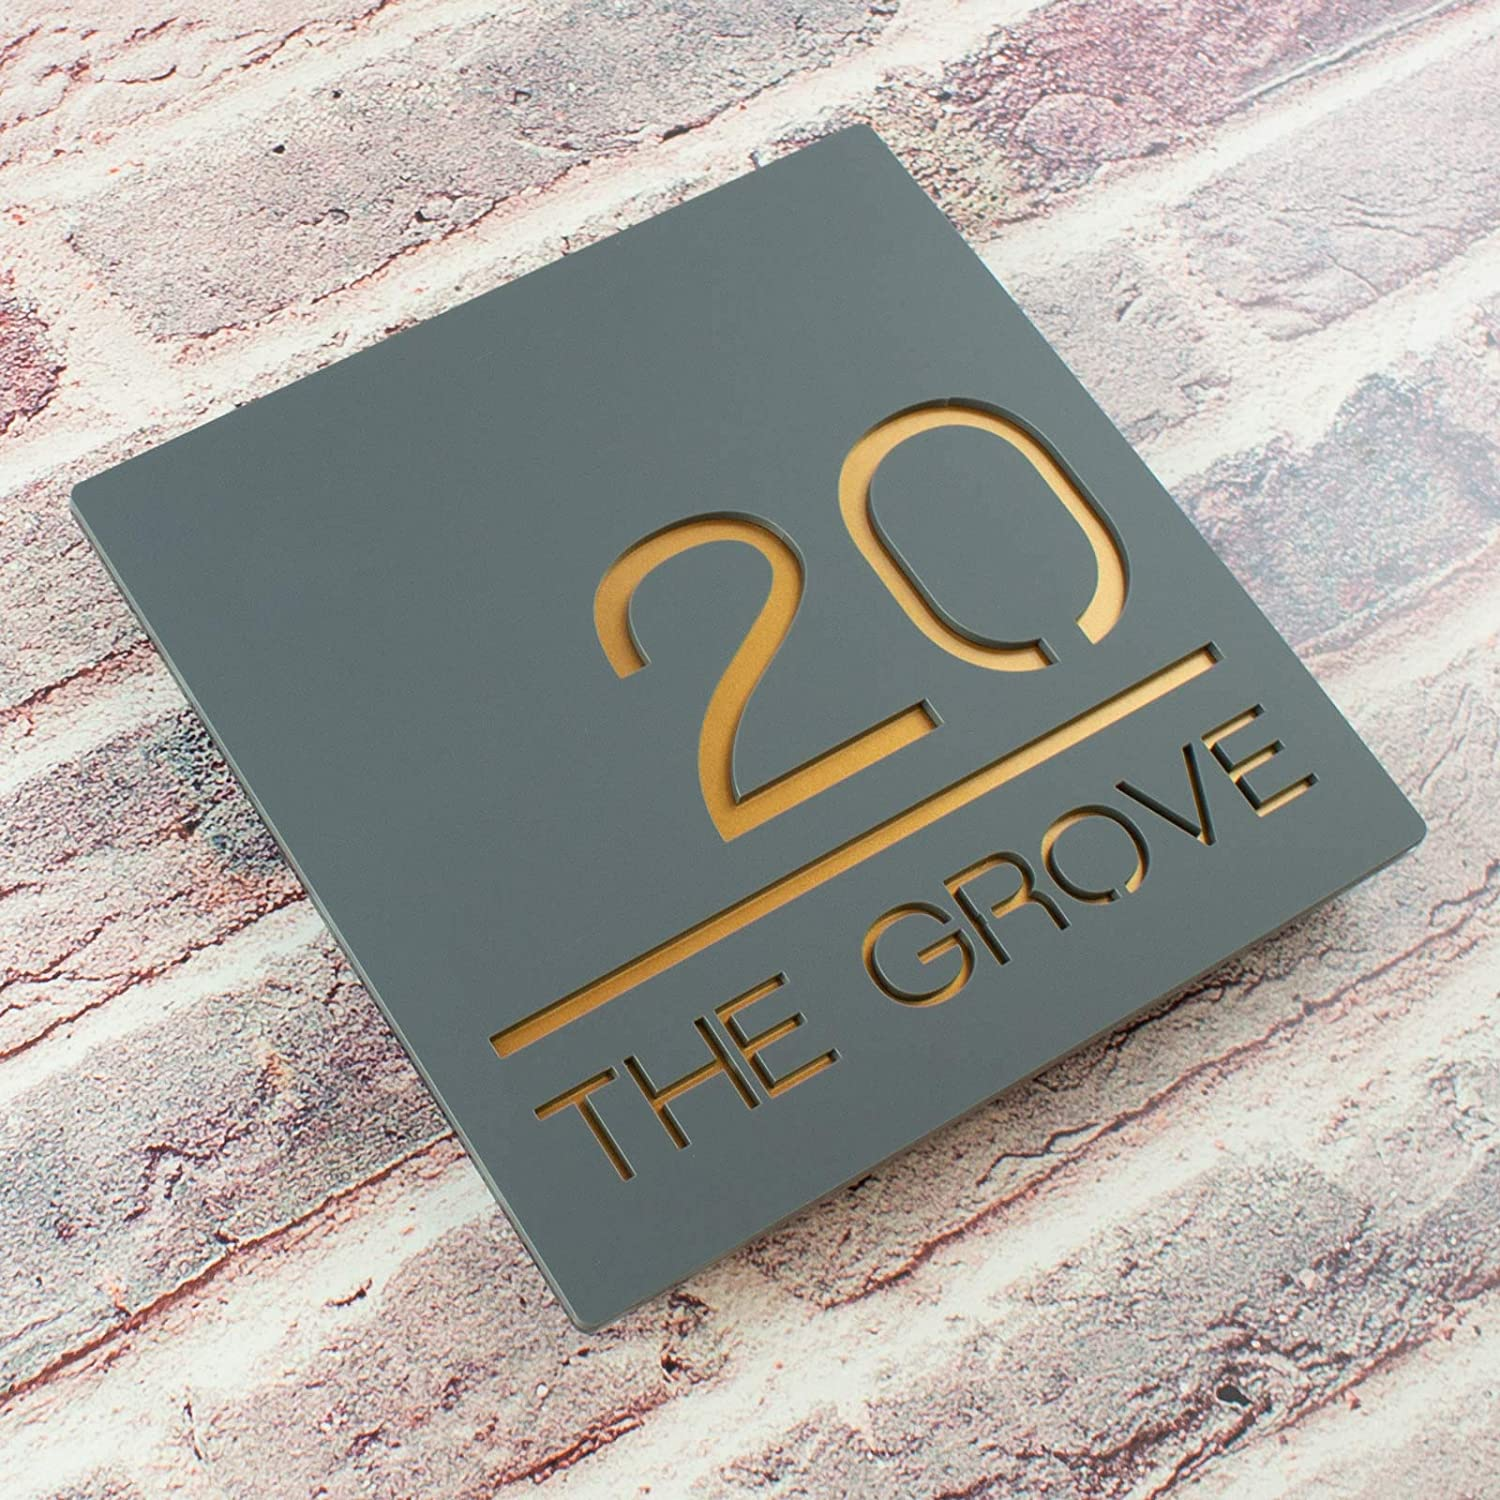 66f4c2cd6c7 Contemporary Acrylic Floating Square House Sign - Modern Door Number  Plaque  Amazon.co.uk  Handmade